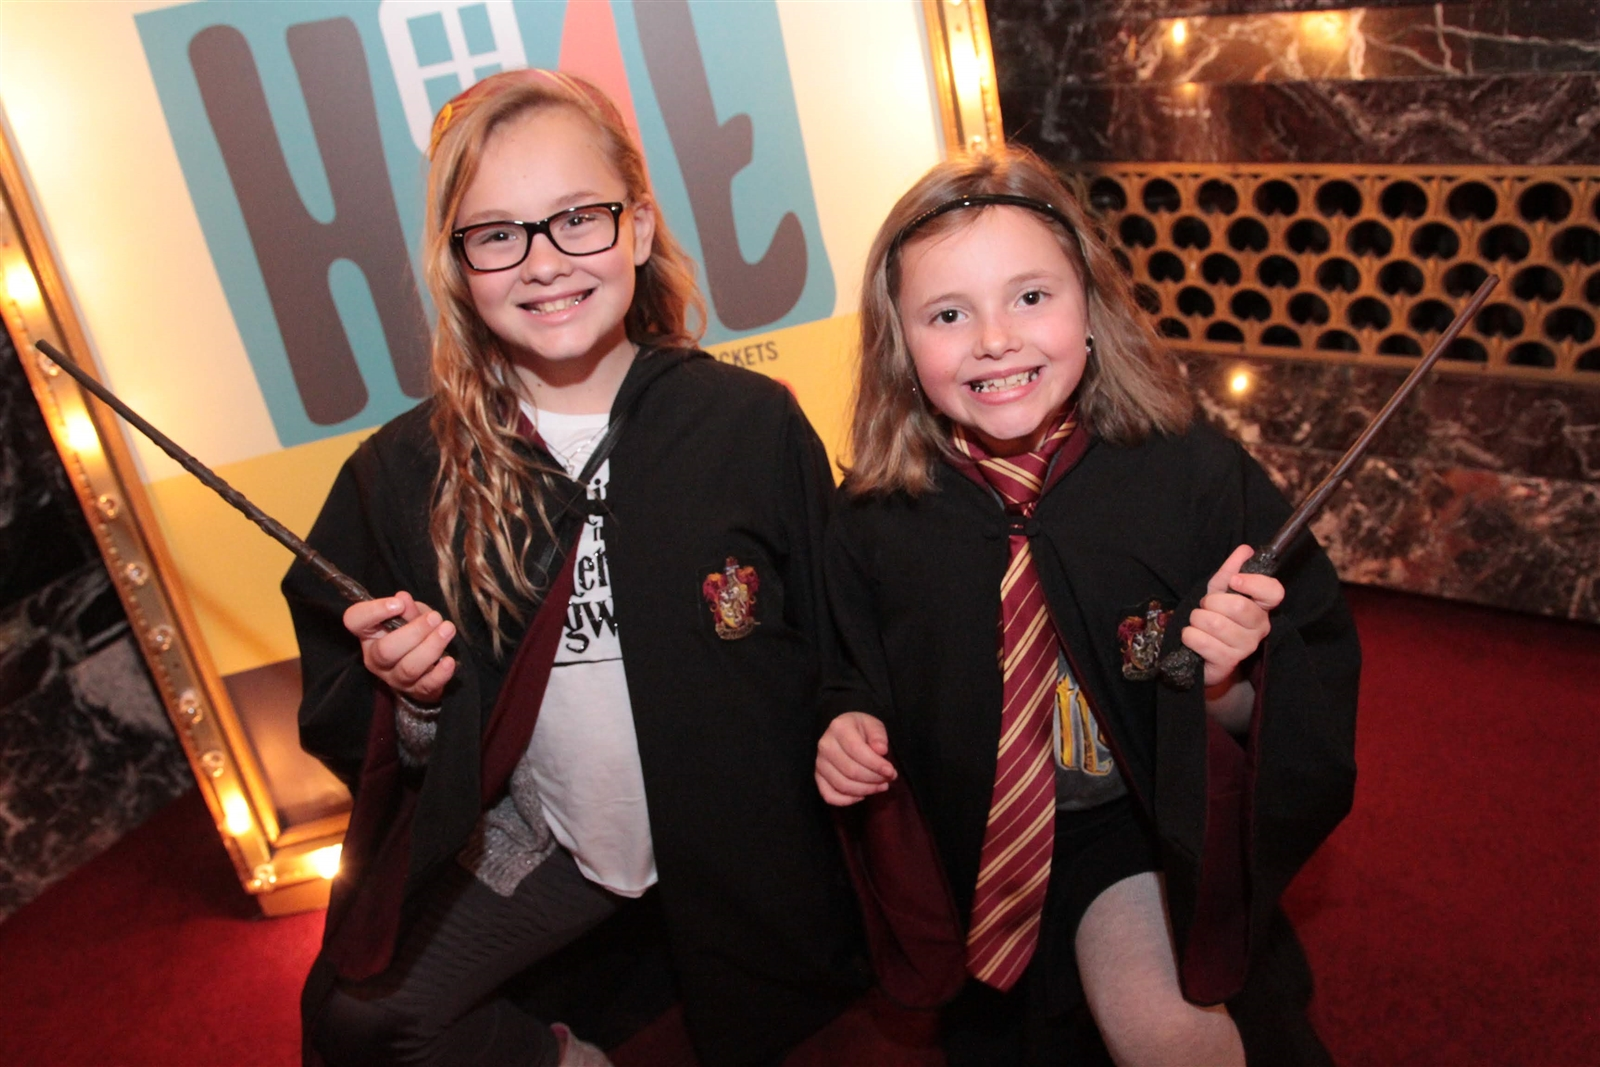 Young Harry Potter fans were all decked out at the first showing of 'Harry Potter and the Sorcer's Stone' in concert with the Buffalo Philharmonic Orchestra at Shea's Buffalo Theatre. (Sarah K. McIlhatten/Special to the News )